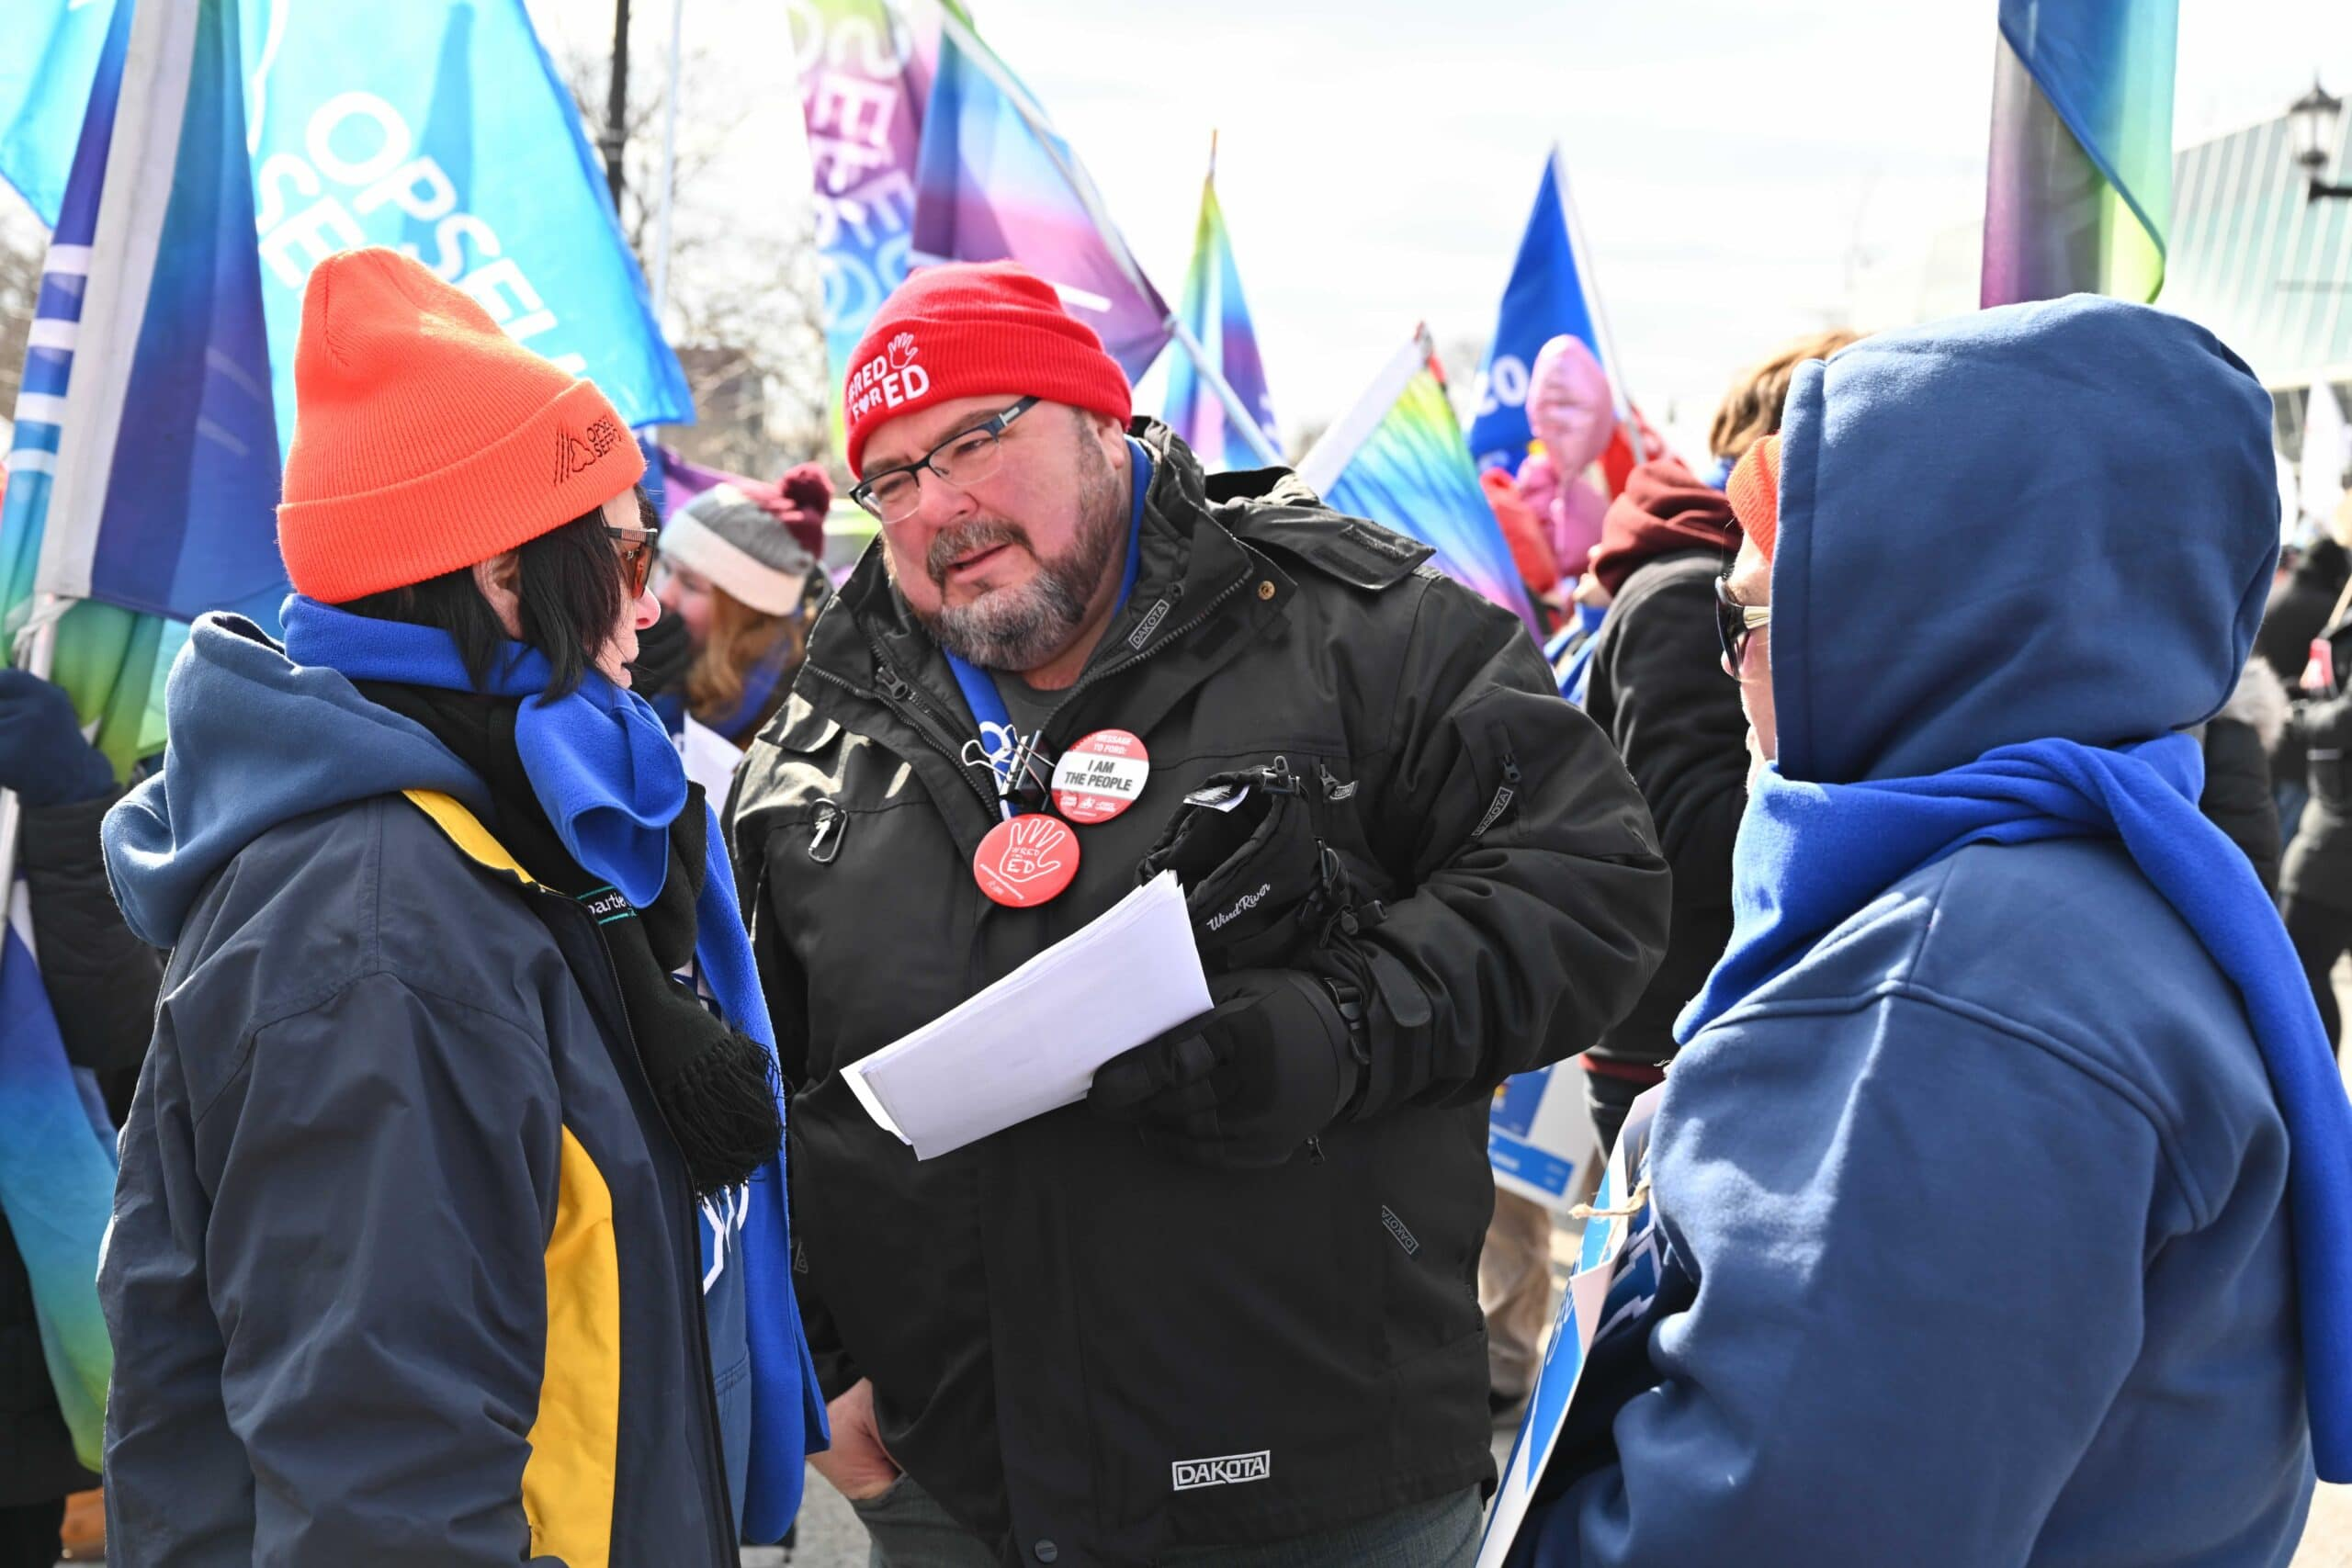 Eddy almedia at OFL rally speaking with members